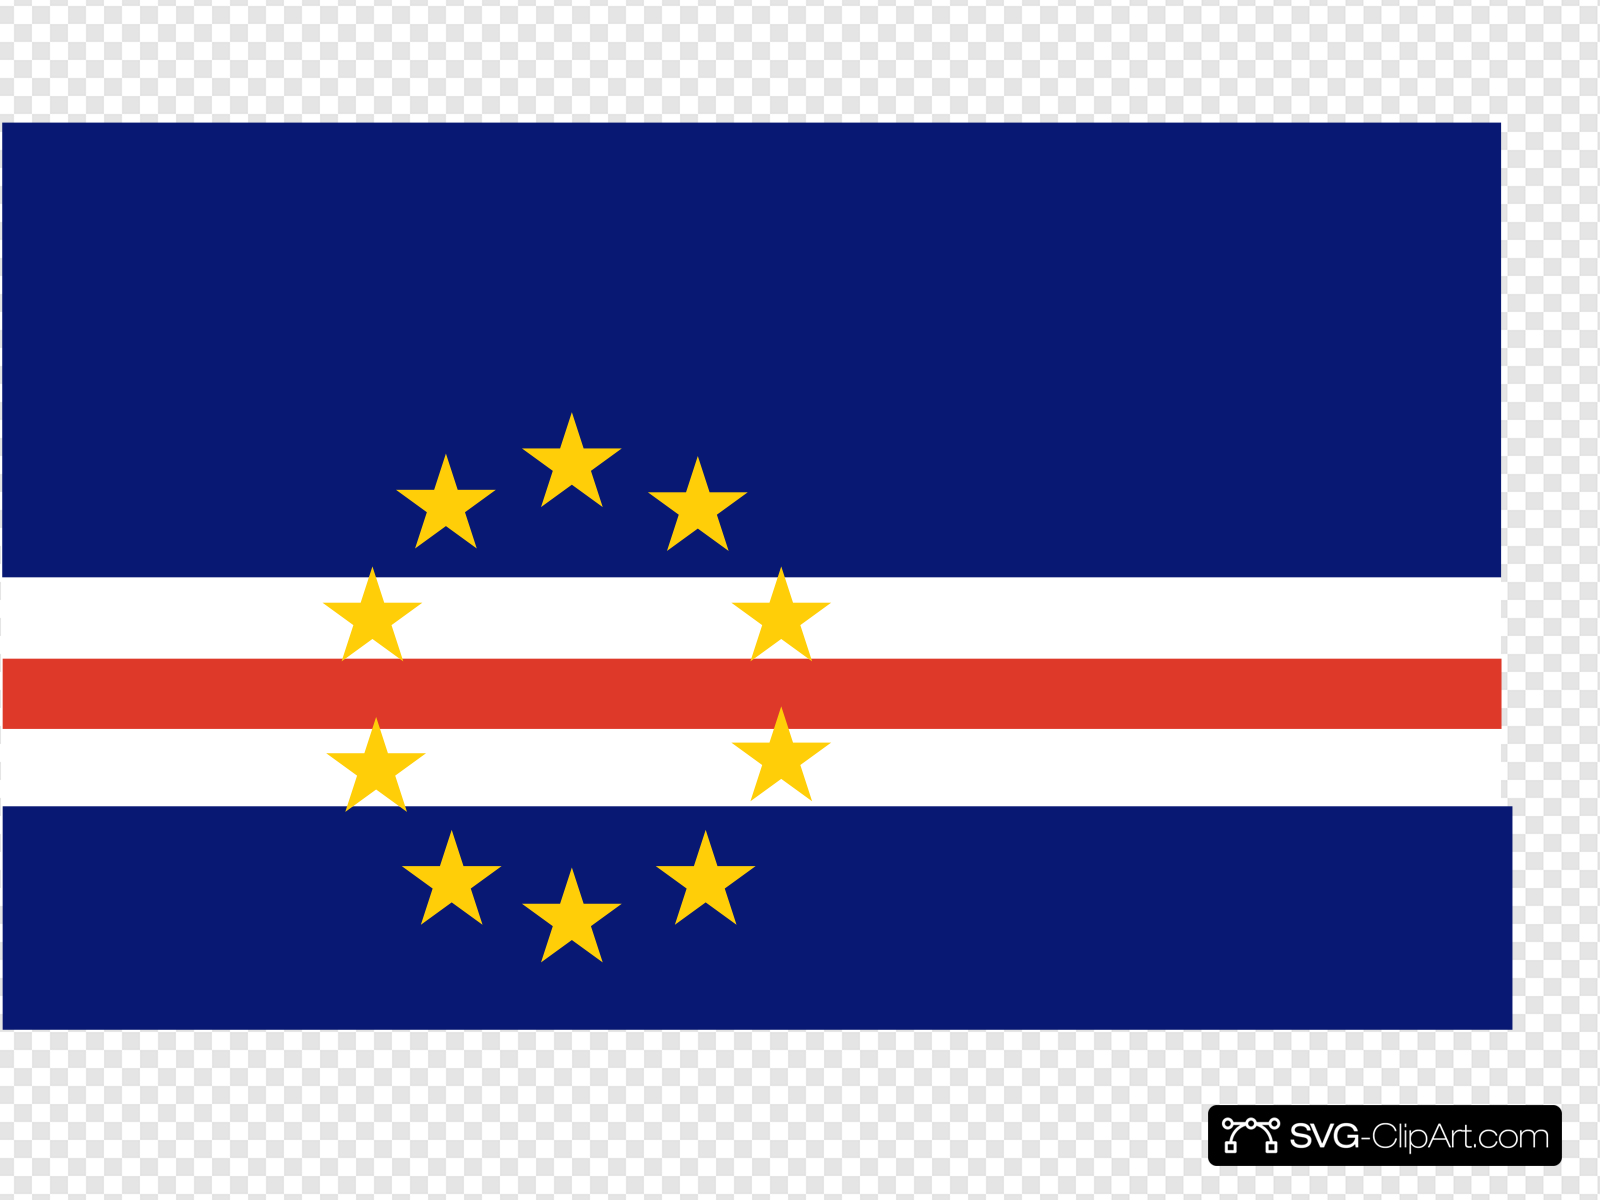 Cape verde clipart clip art royalty free Flag Of Cape Verde Clip art, Icon and SVG - SVG Clipart clip art royalty free